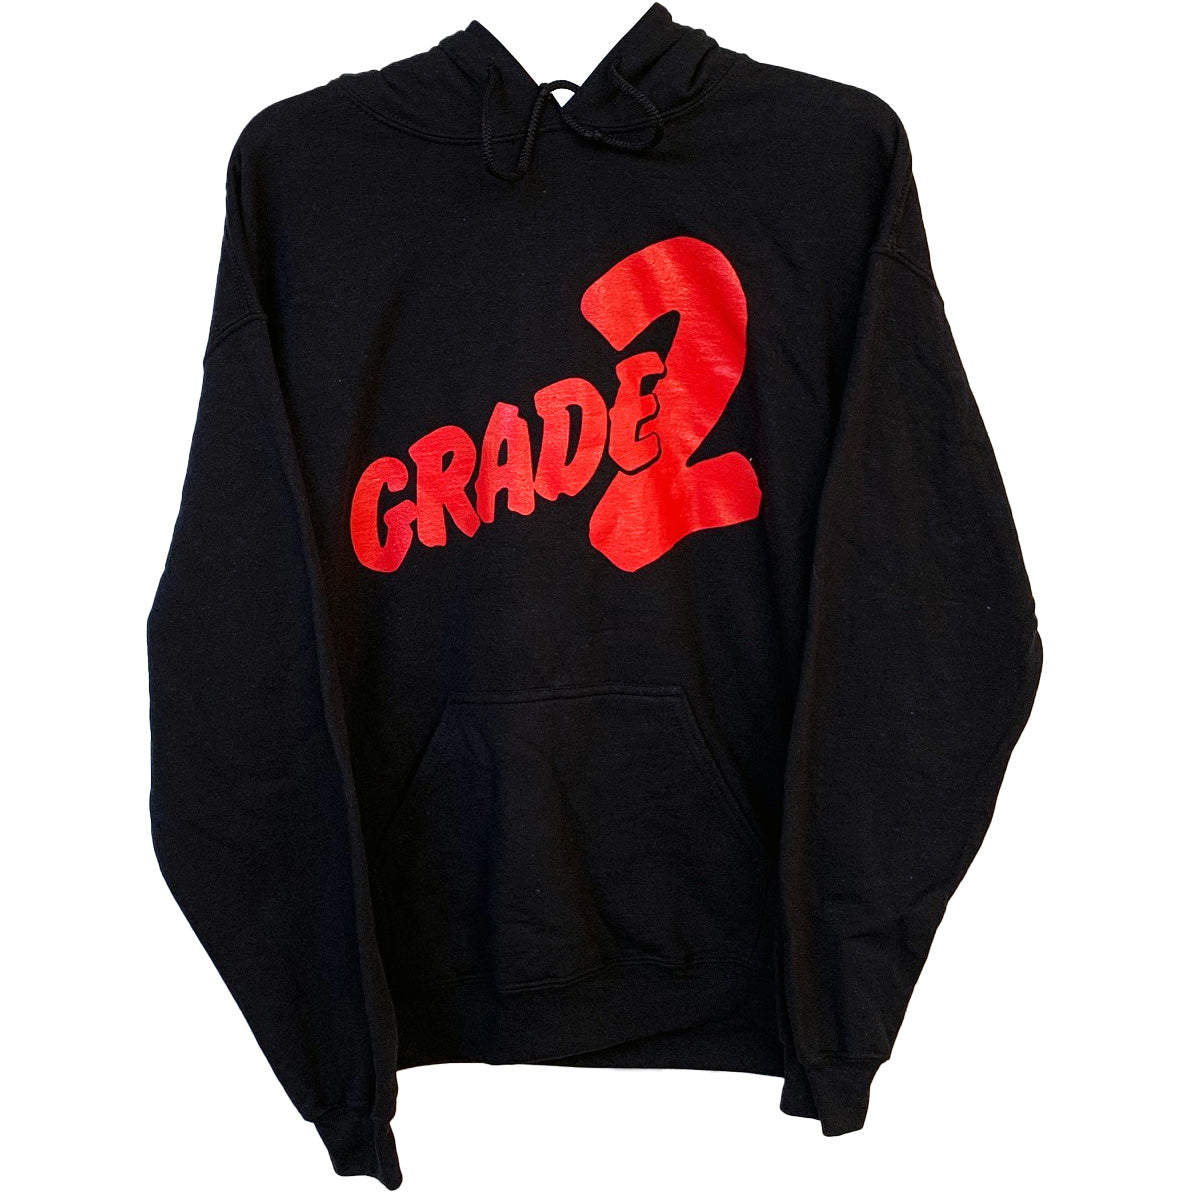 Grade 2 - Red Logo - Black - Hooded Sweatshirt